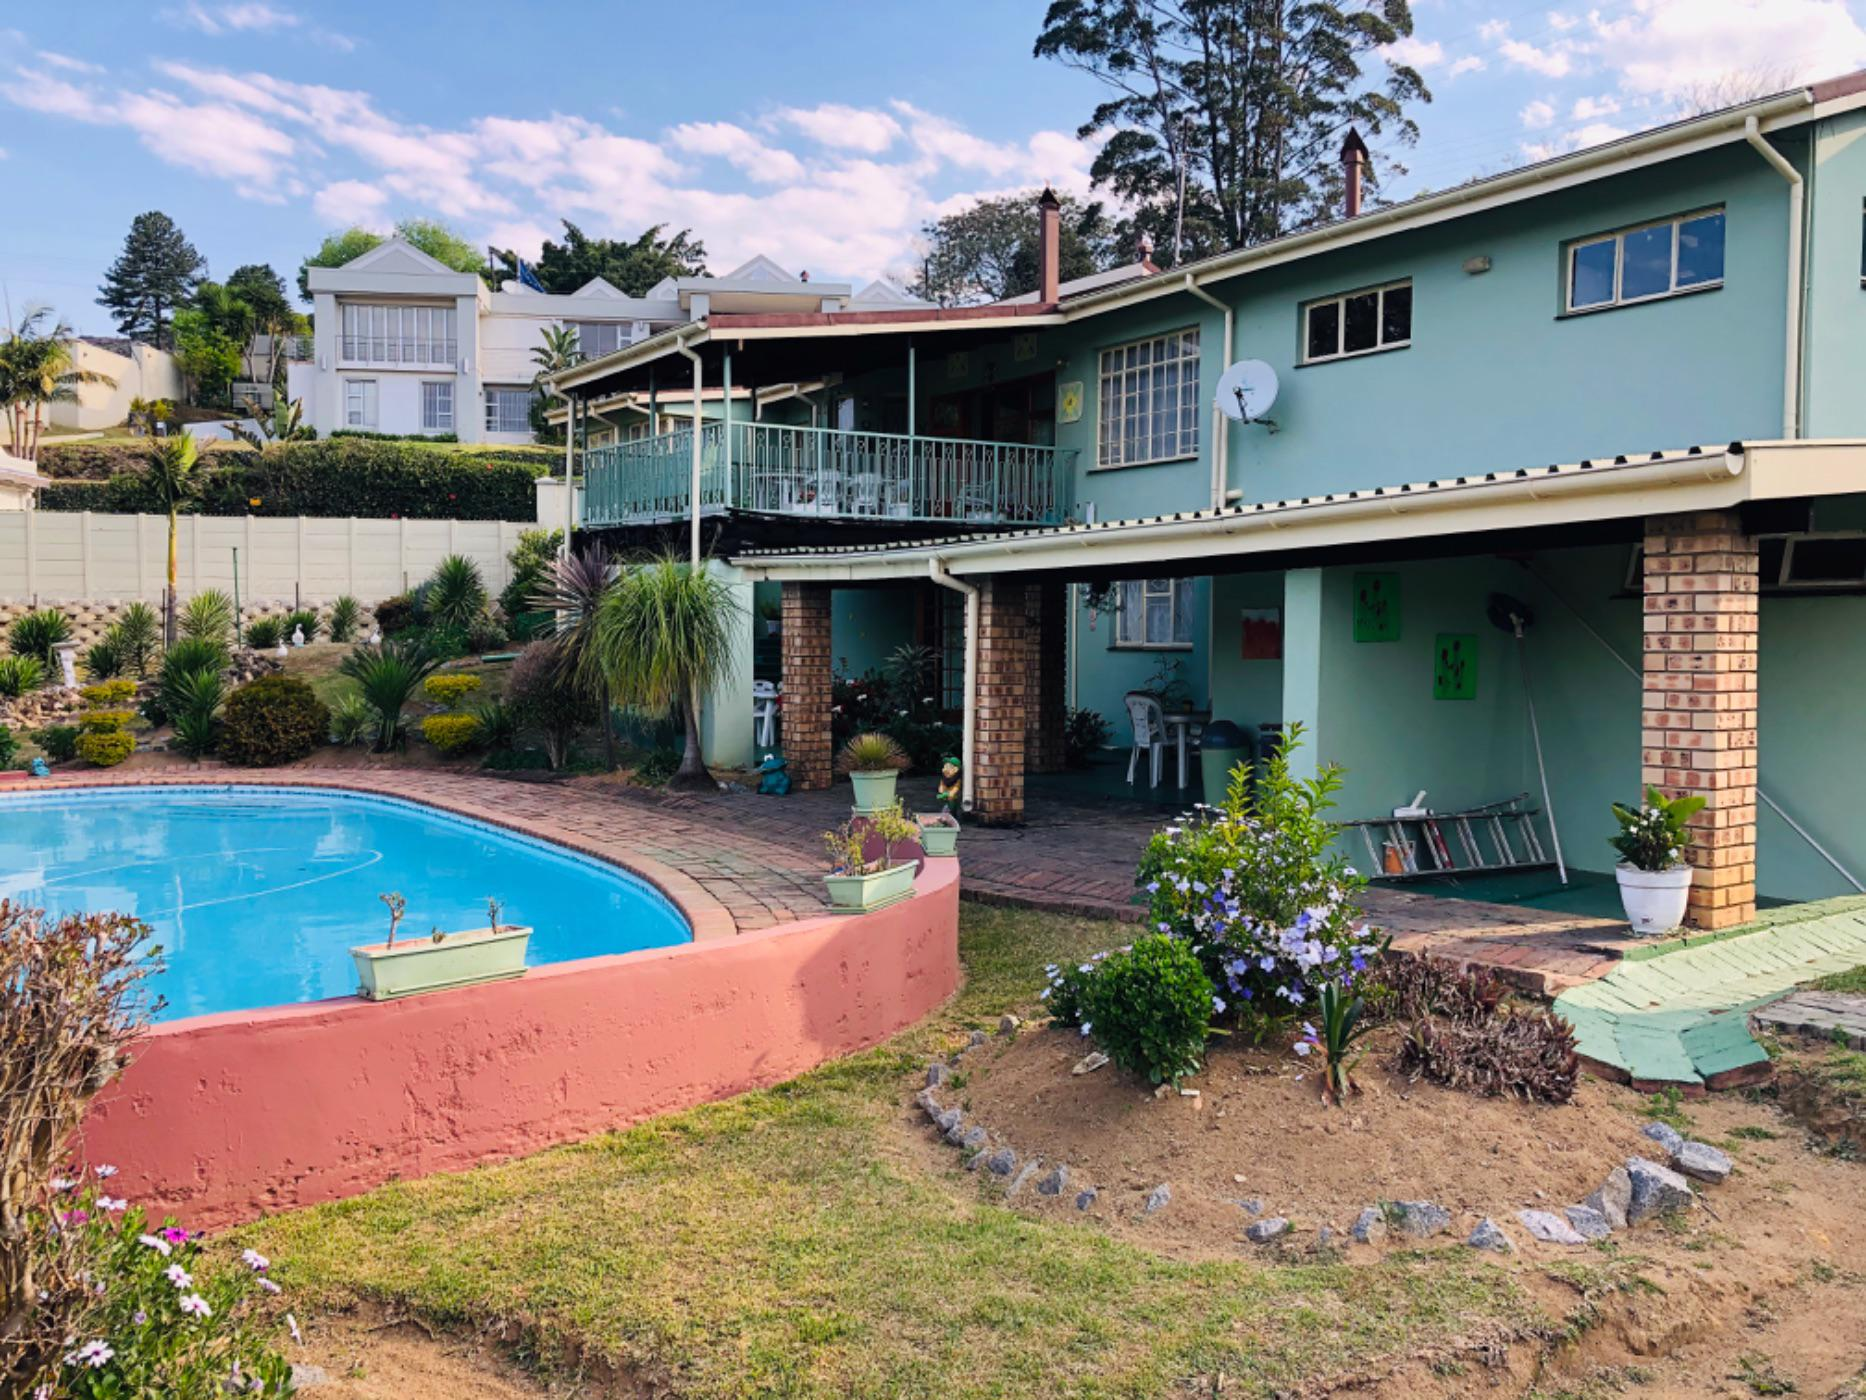 4 bedroom house for sale in Mbabane (Swaziland)